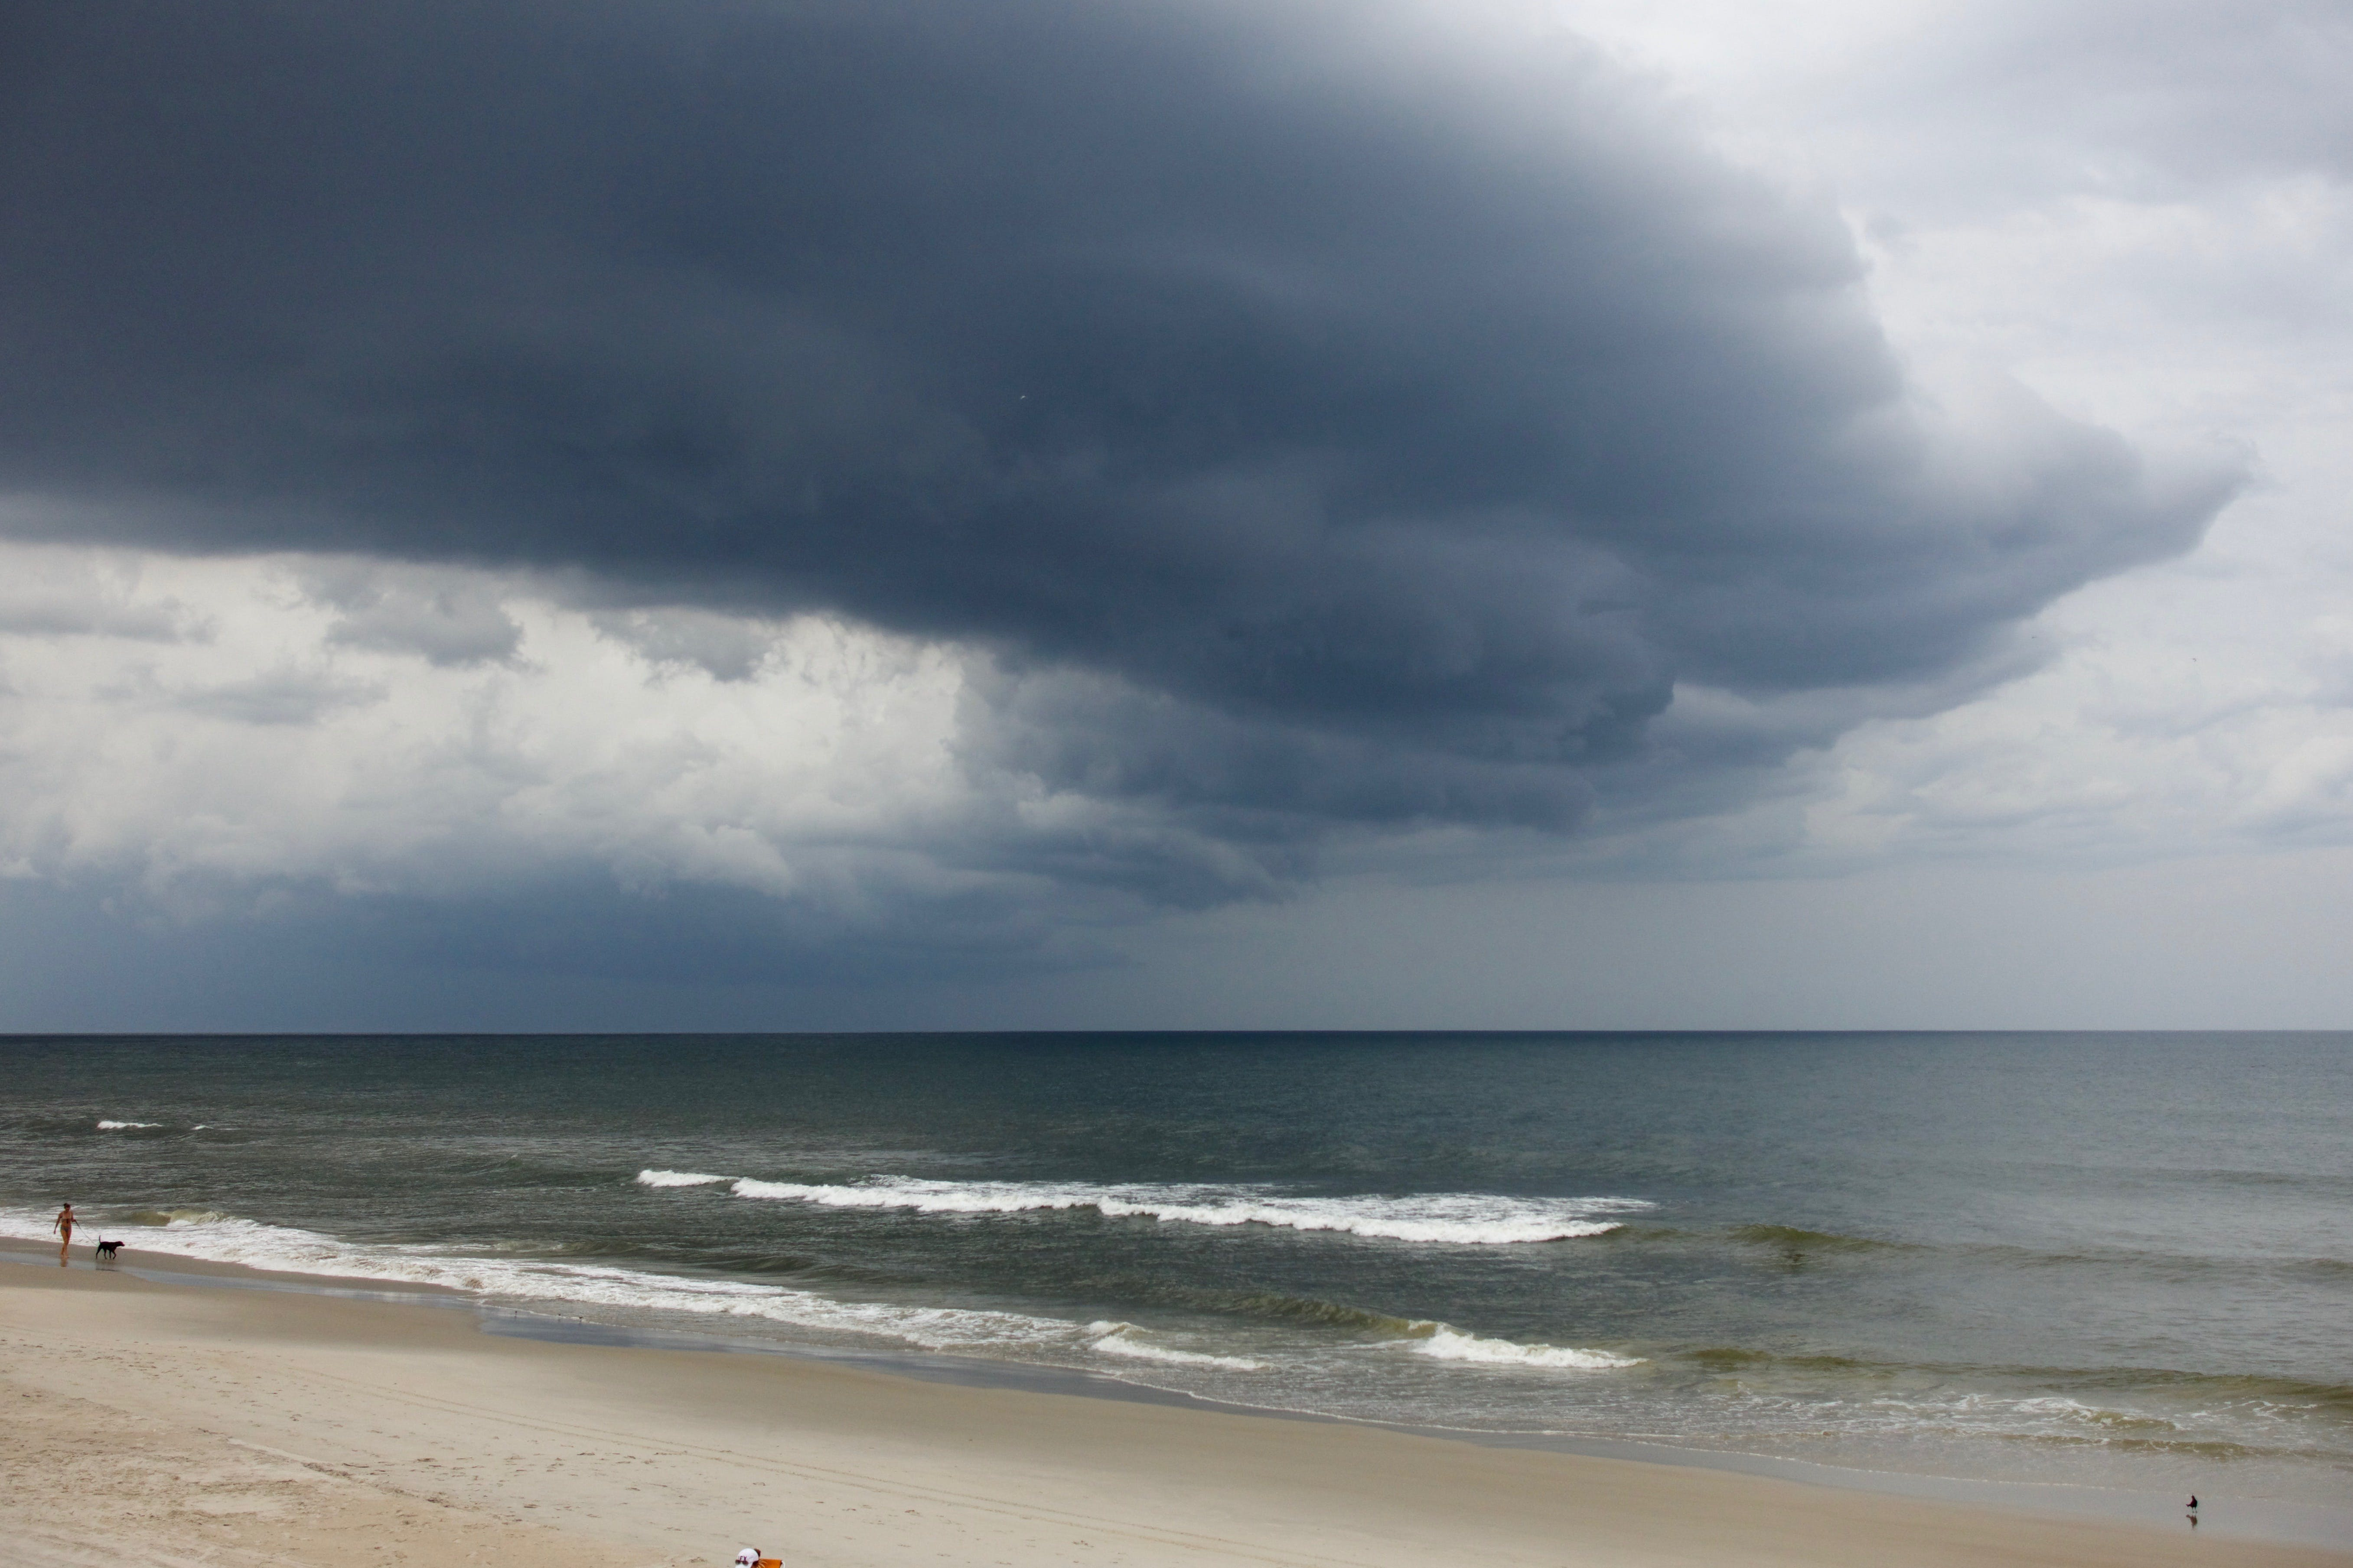 Free stock photo of beach, clouds, ocean, storm